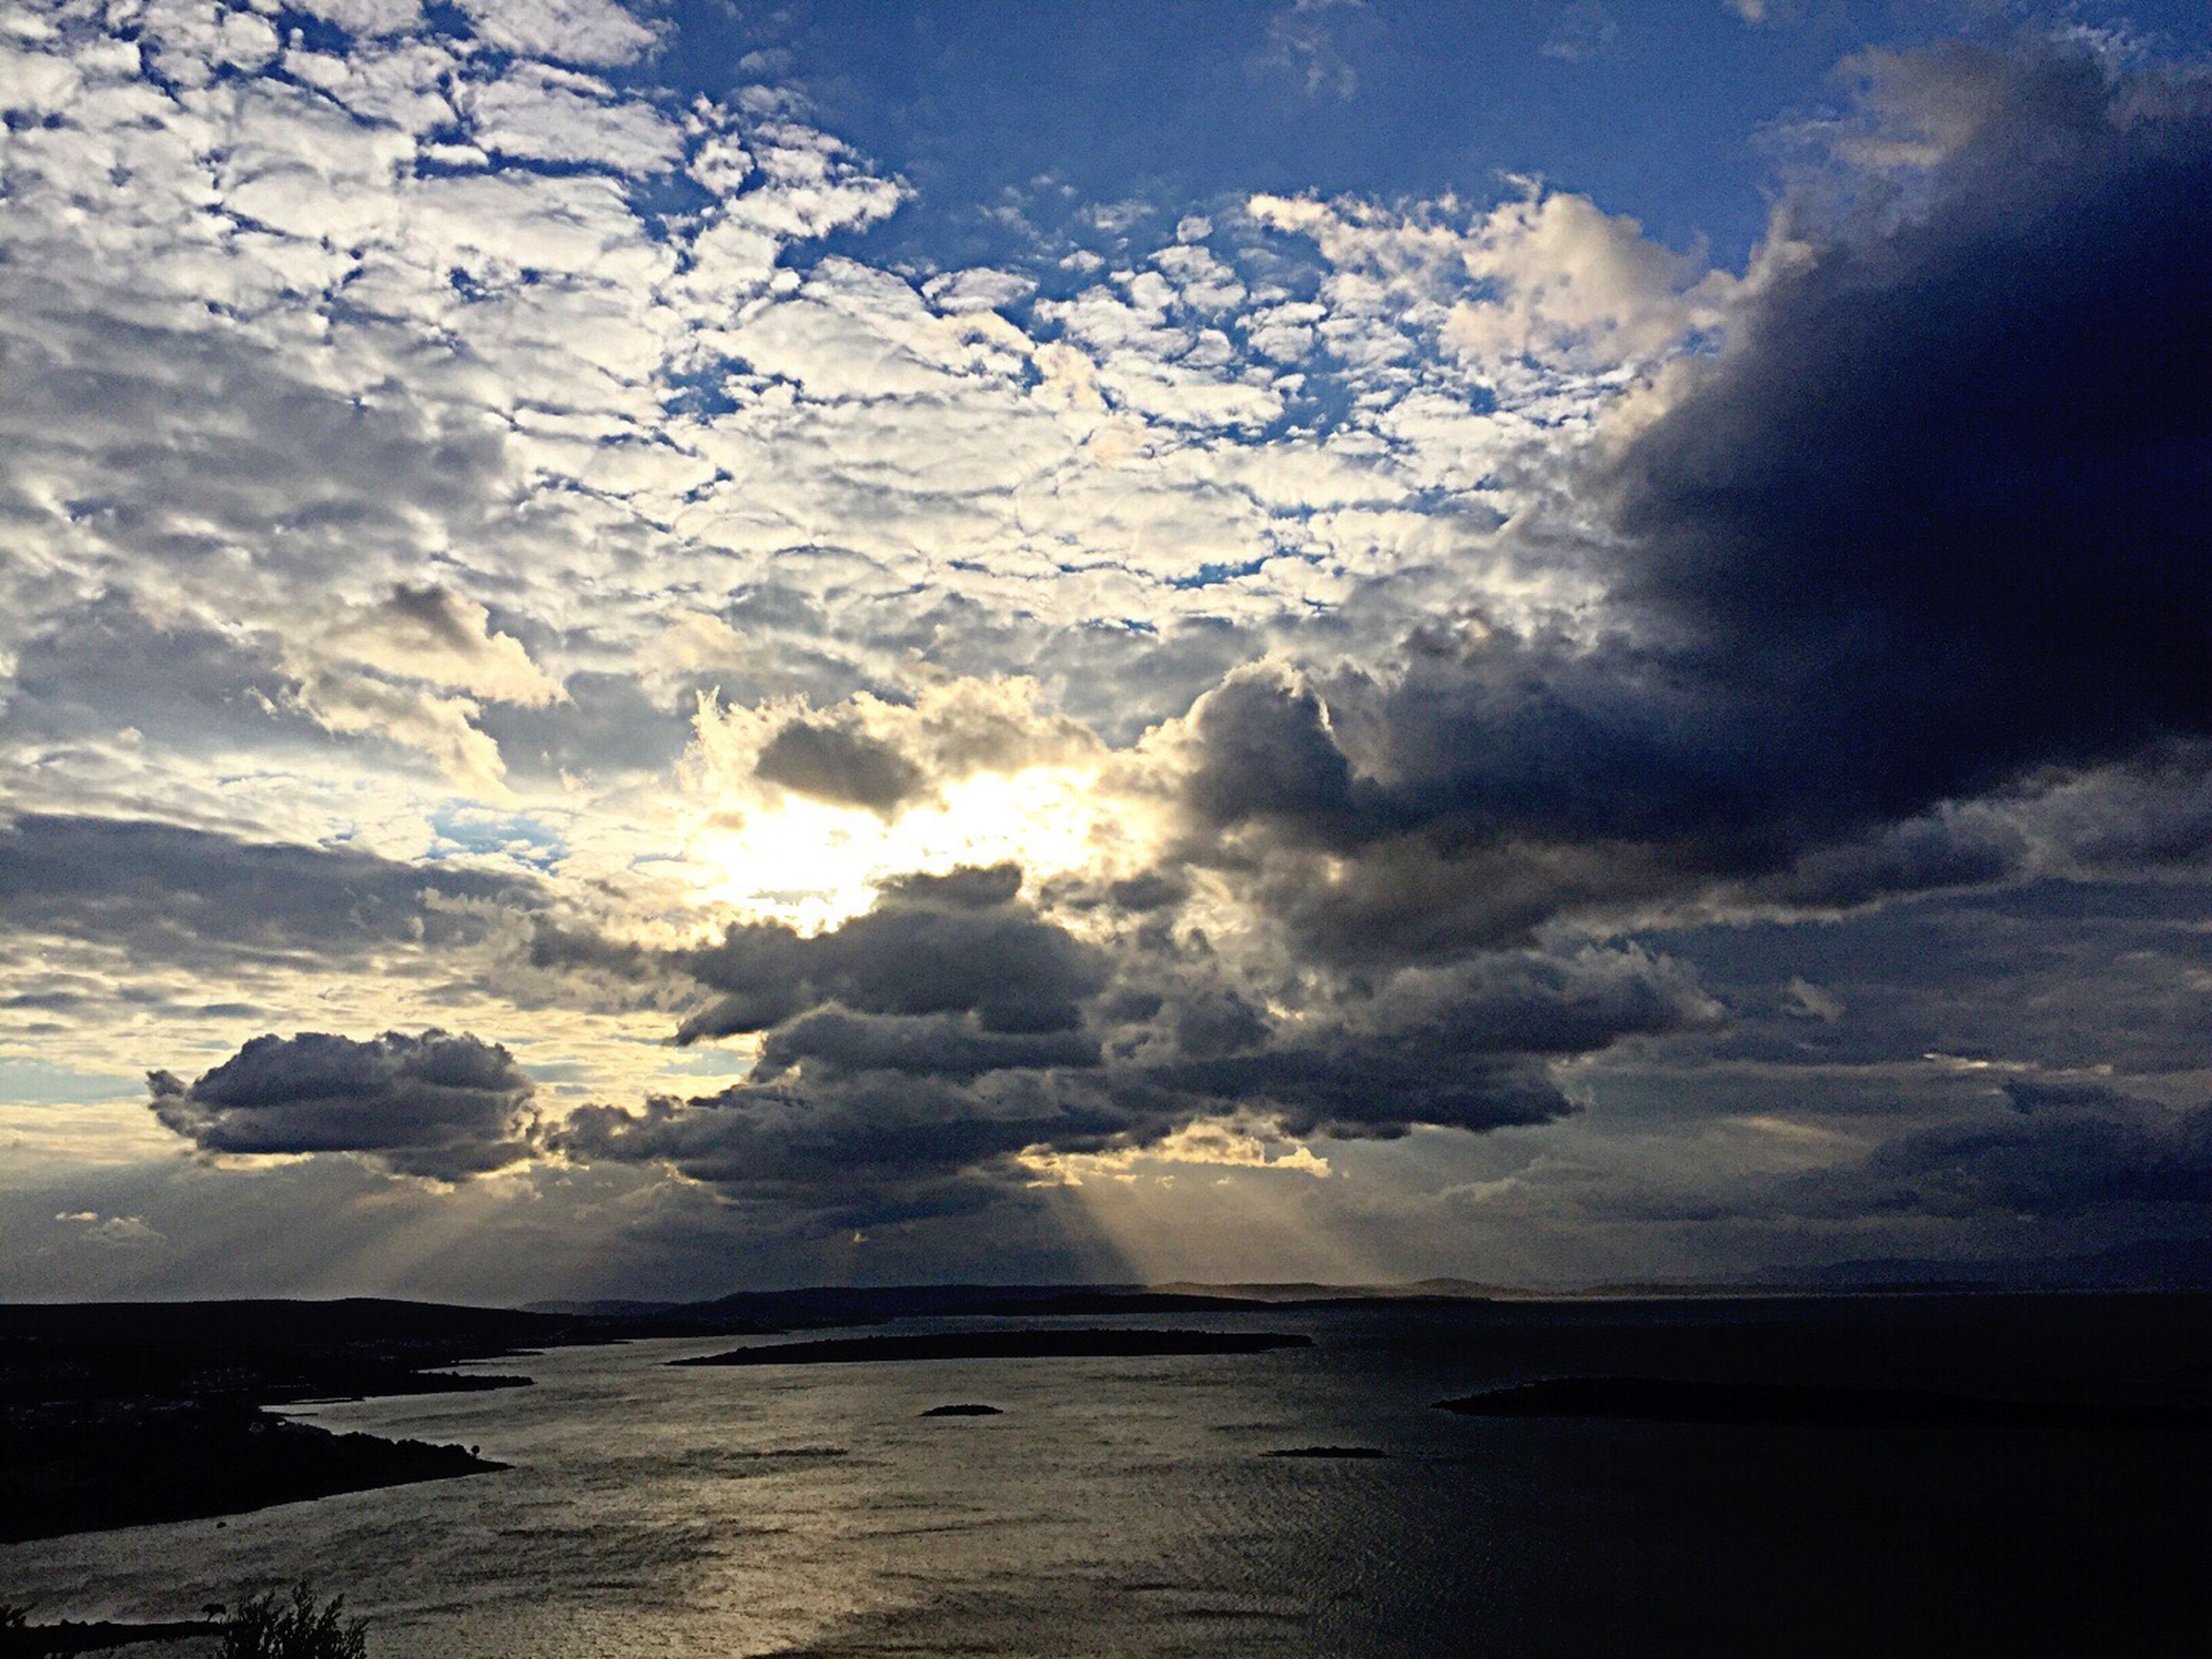 water, tranquil scene, scenics, sea, tranquility, beauty in nature, waterfront, nature, calm, sky, cloud - sky, cloudy, cloud, idyllic, seascape, ocean, outdoors, day, non-urban scene, cloudscape, remote, coastline, majestic, dramatic sky, atmospheric mood, no people, shore, cumulus cloud